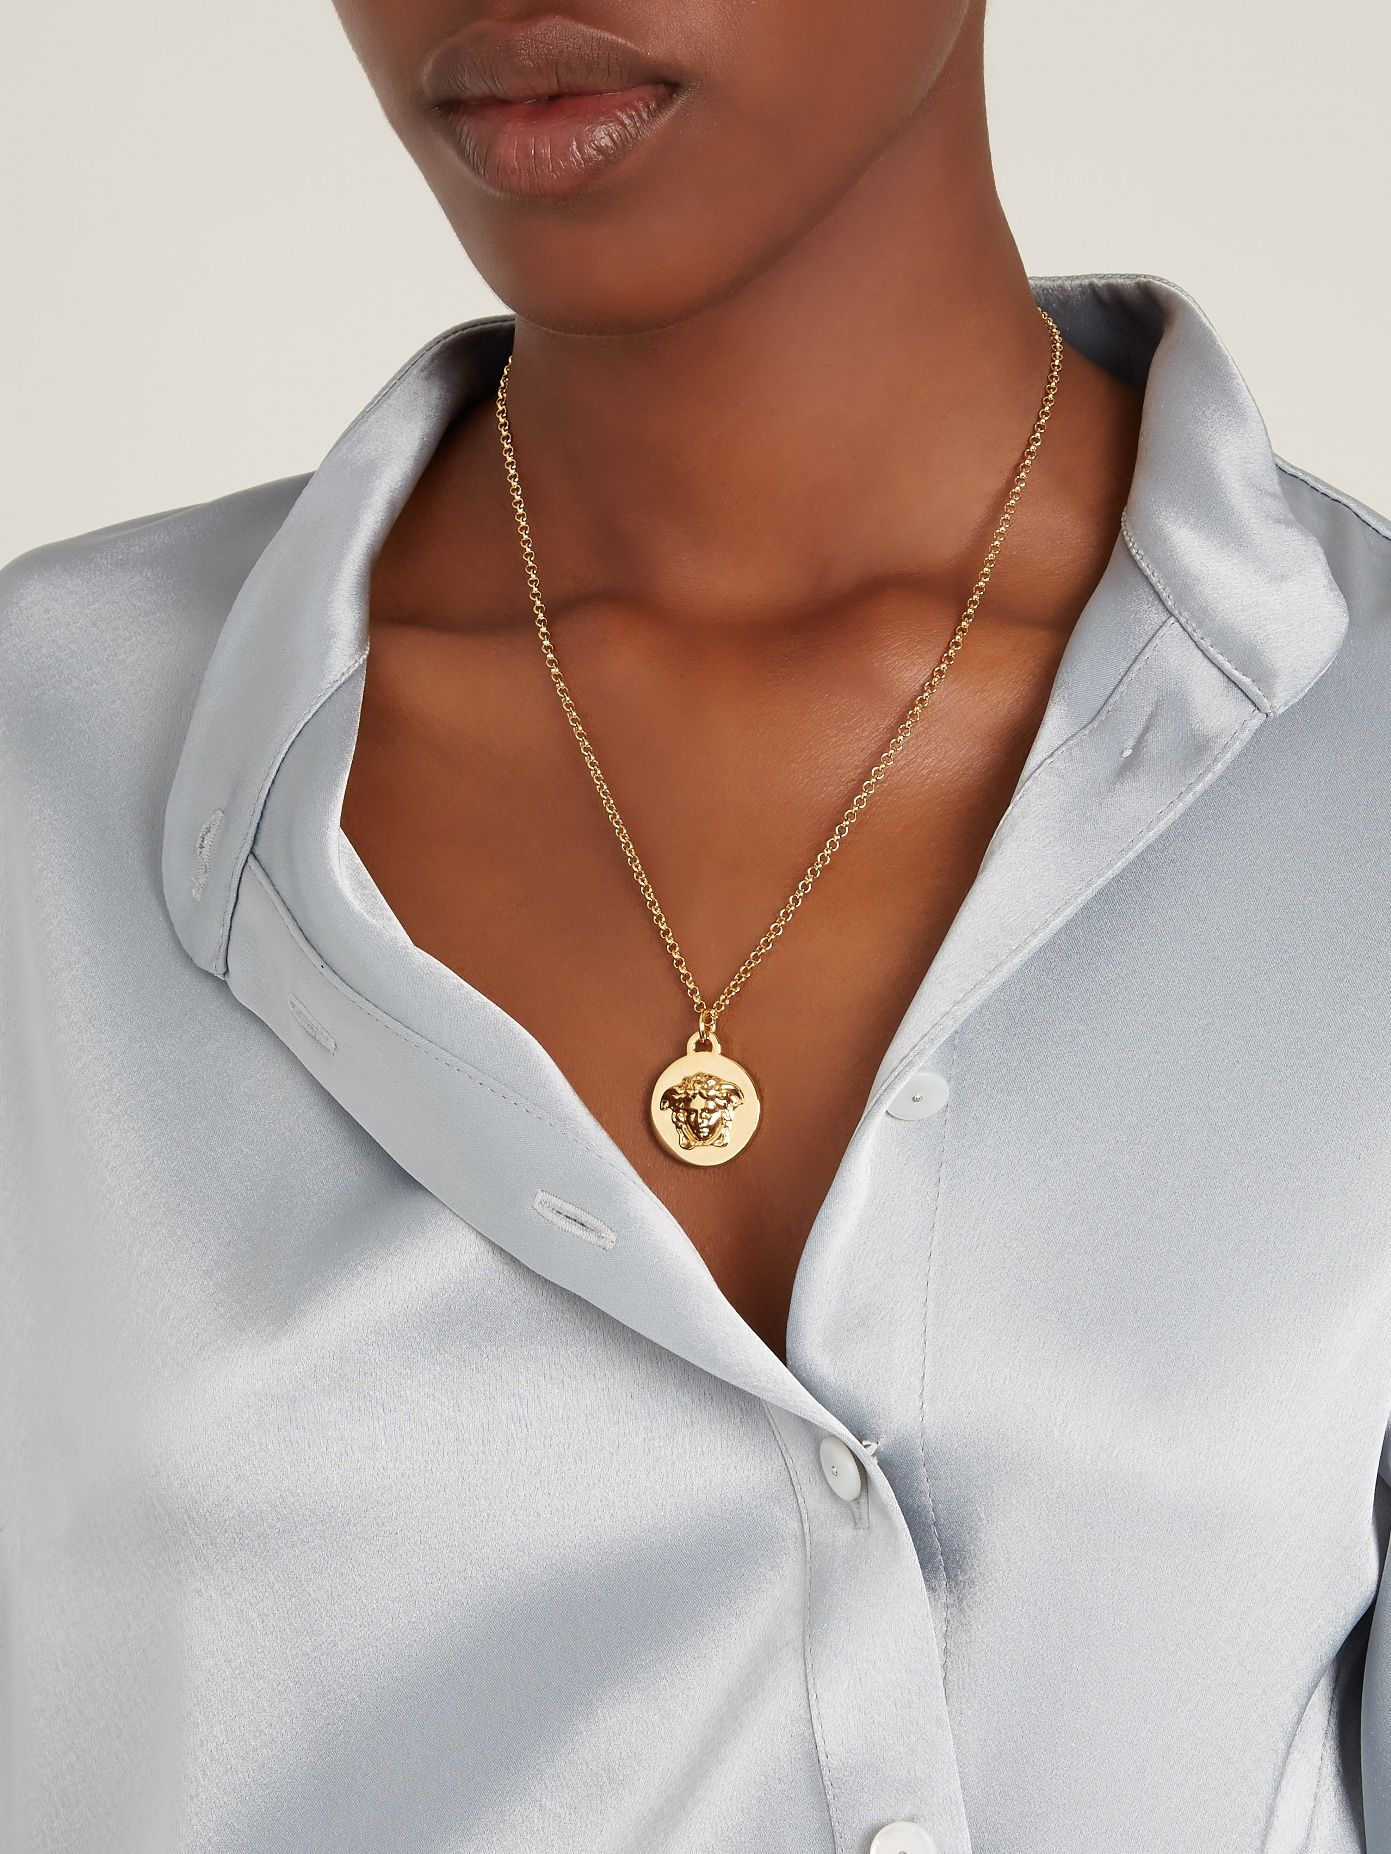 Click here to buy versace medusa pendant necklace at matchesfashion click here to buy versace medusa pendant necklace at matchesfashion aloadofball Images